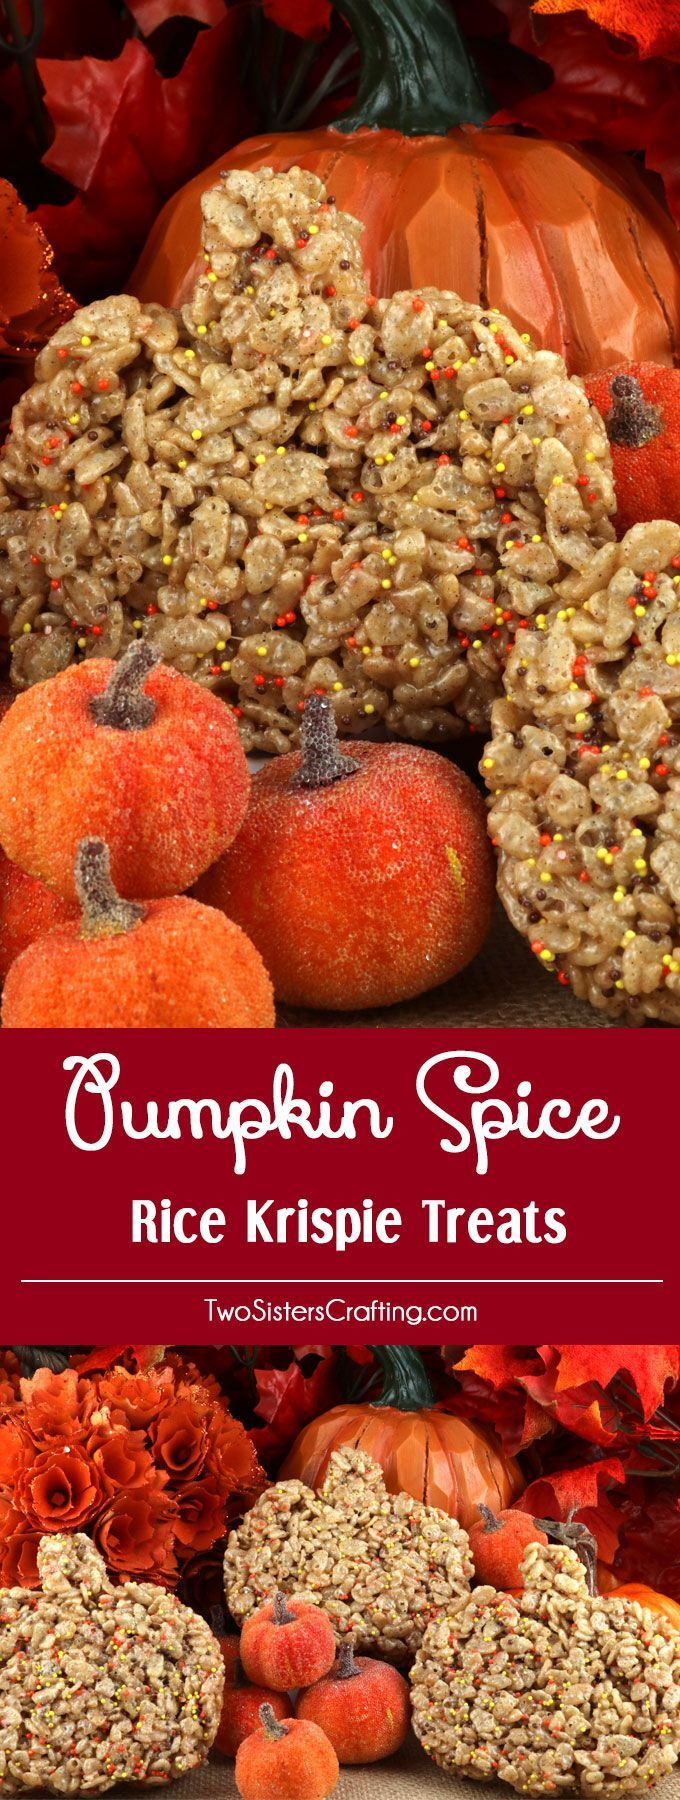 Pumpkin Spice Rice Krispie Treats - a instant fall classic dessert featuring brown butter and pumpkin spice is one yummy and easy to make Thanksgiving treat. This unique and tasty Fall dessert would be great Thanksgiving dessert idea for a potluck dinner, a fall bake sale or a Christmas Cookie exchange. Pin this delicious Rice Krispie Treat recipe for later and follow us for more great Thanksgiving Food ideas.